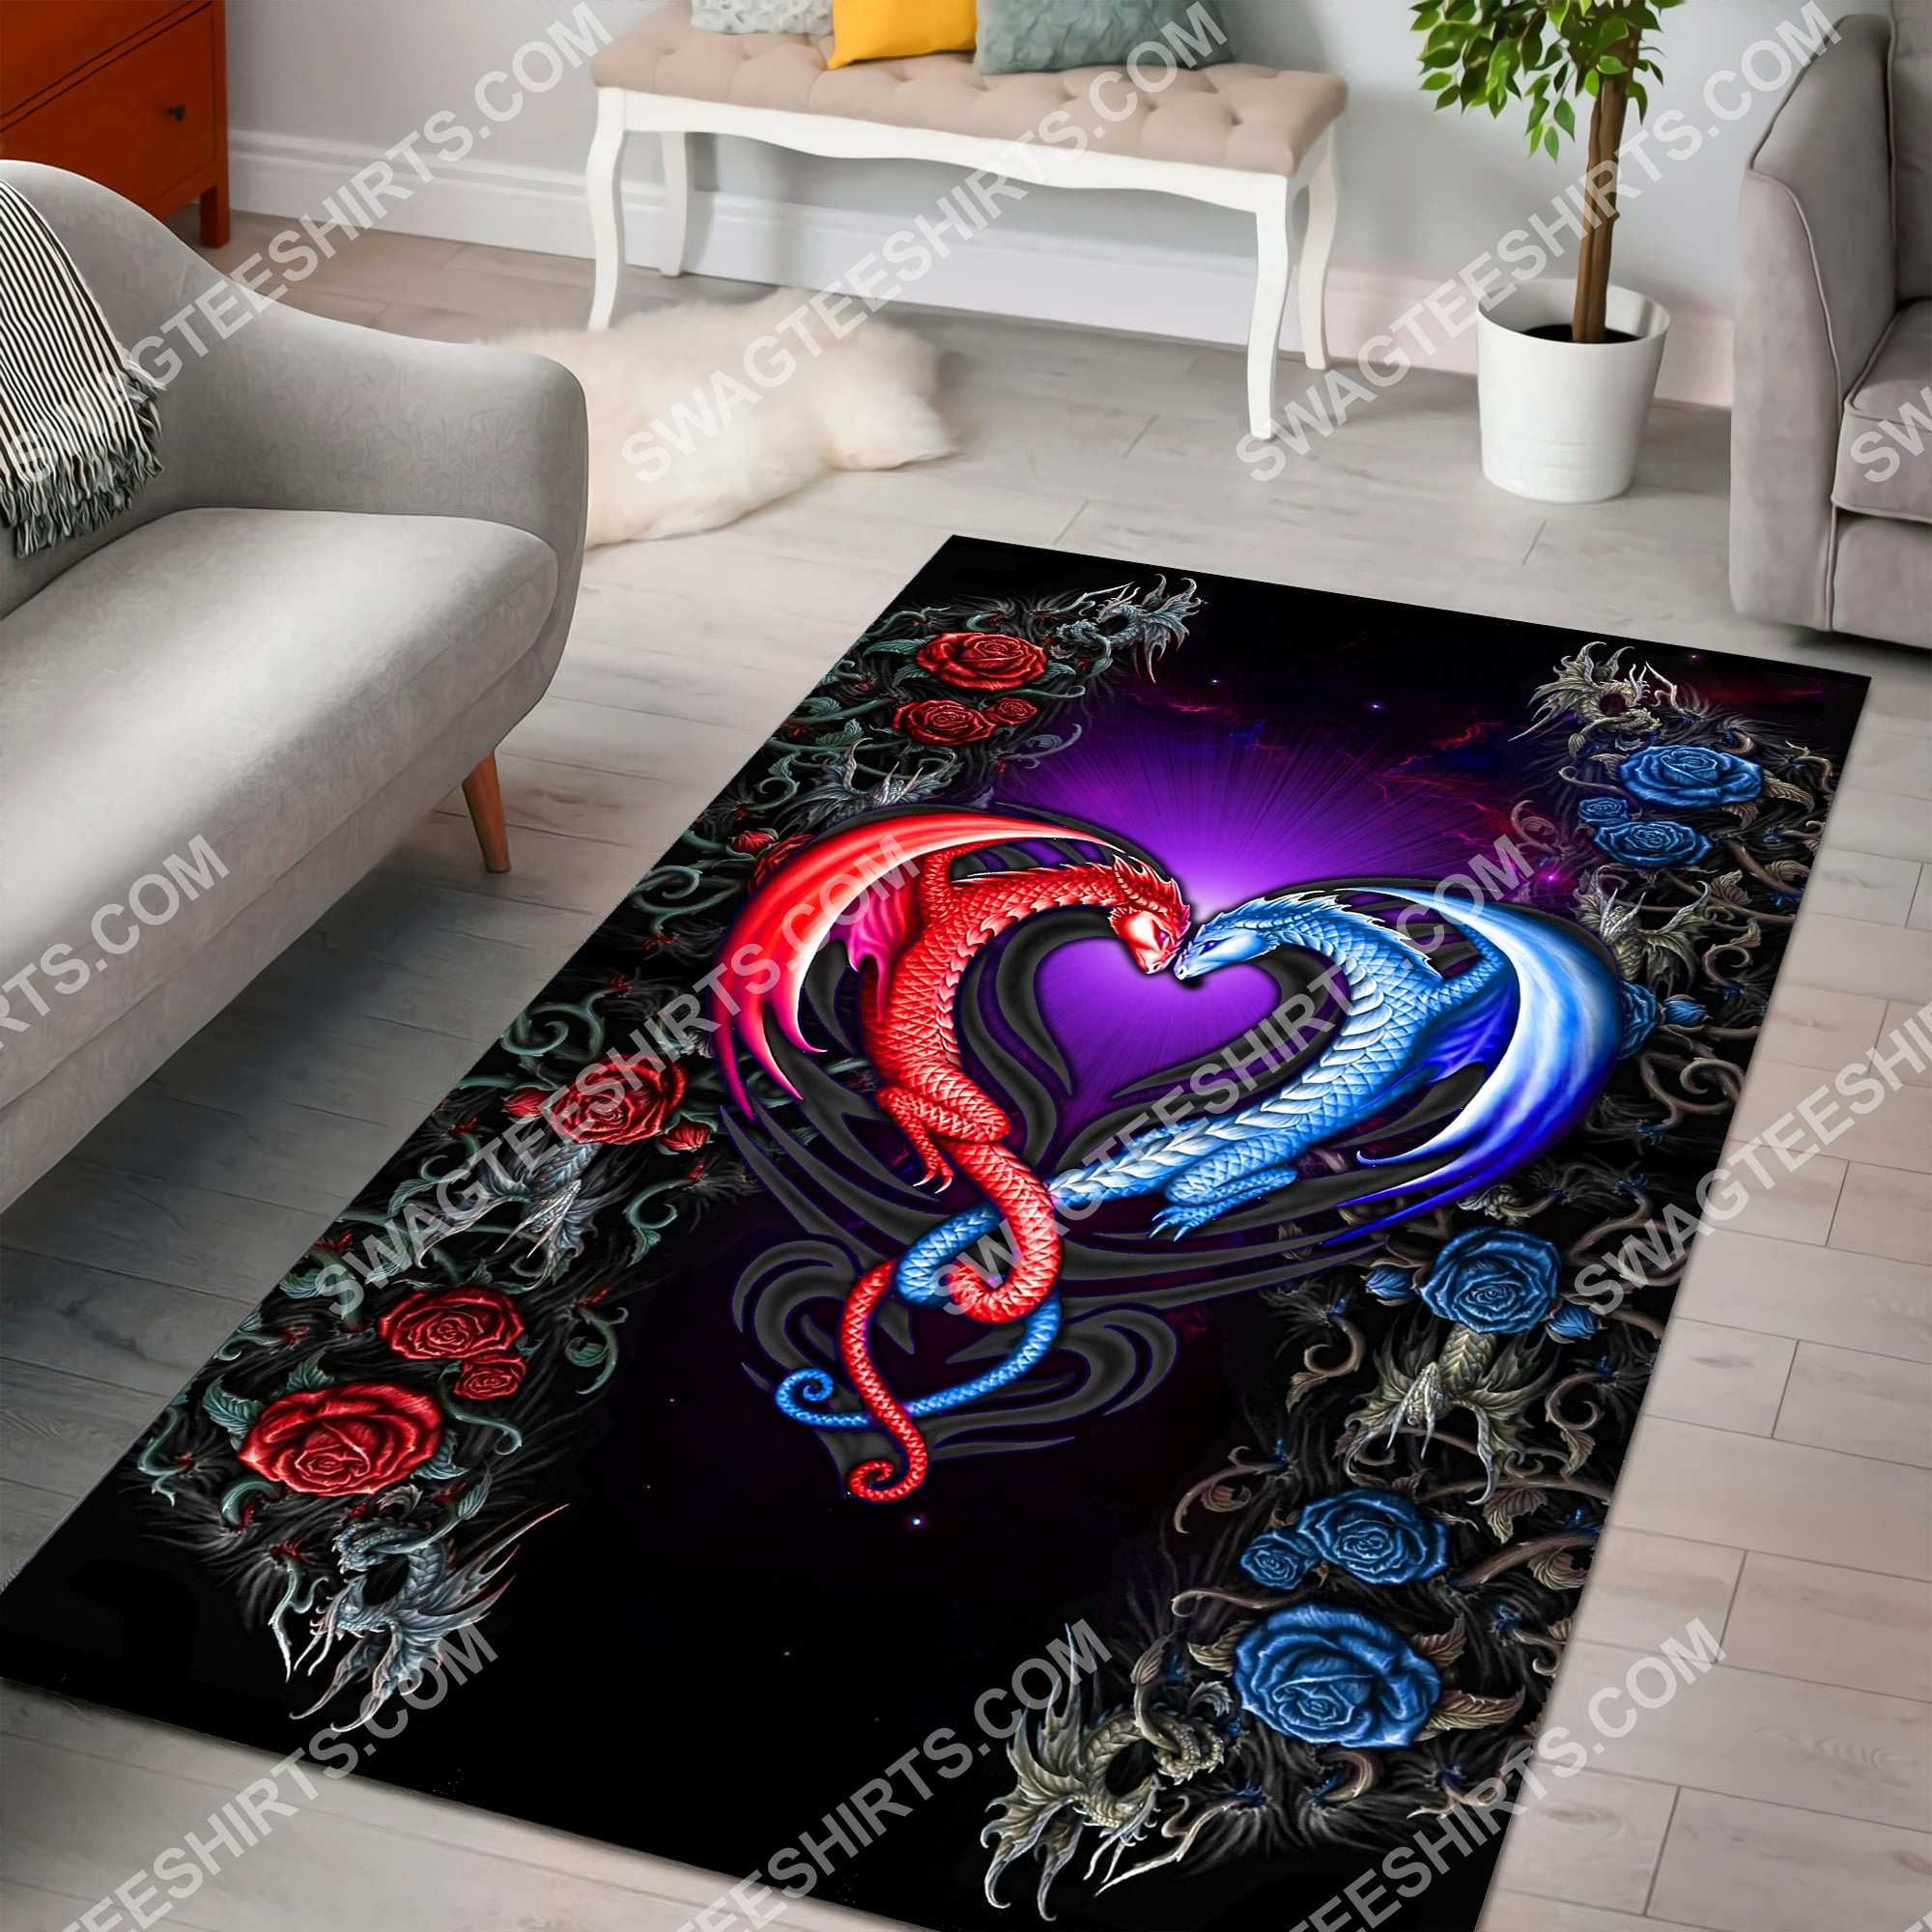 flower dragon couples painting art all over printed rug 5(1)